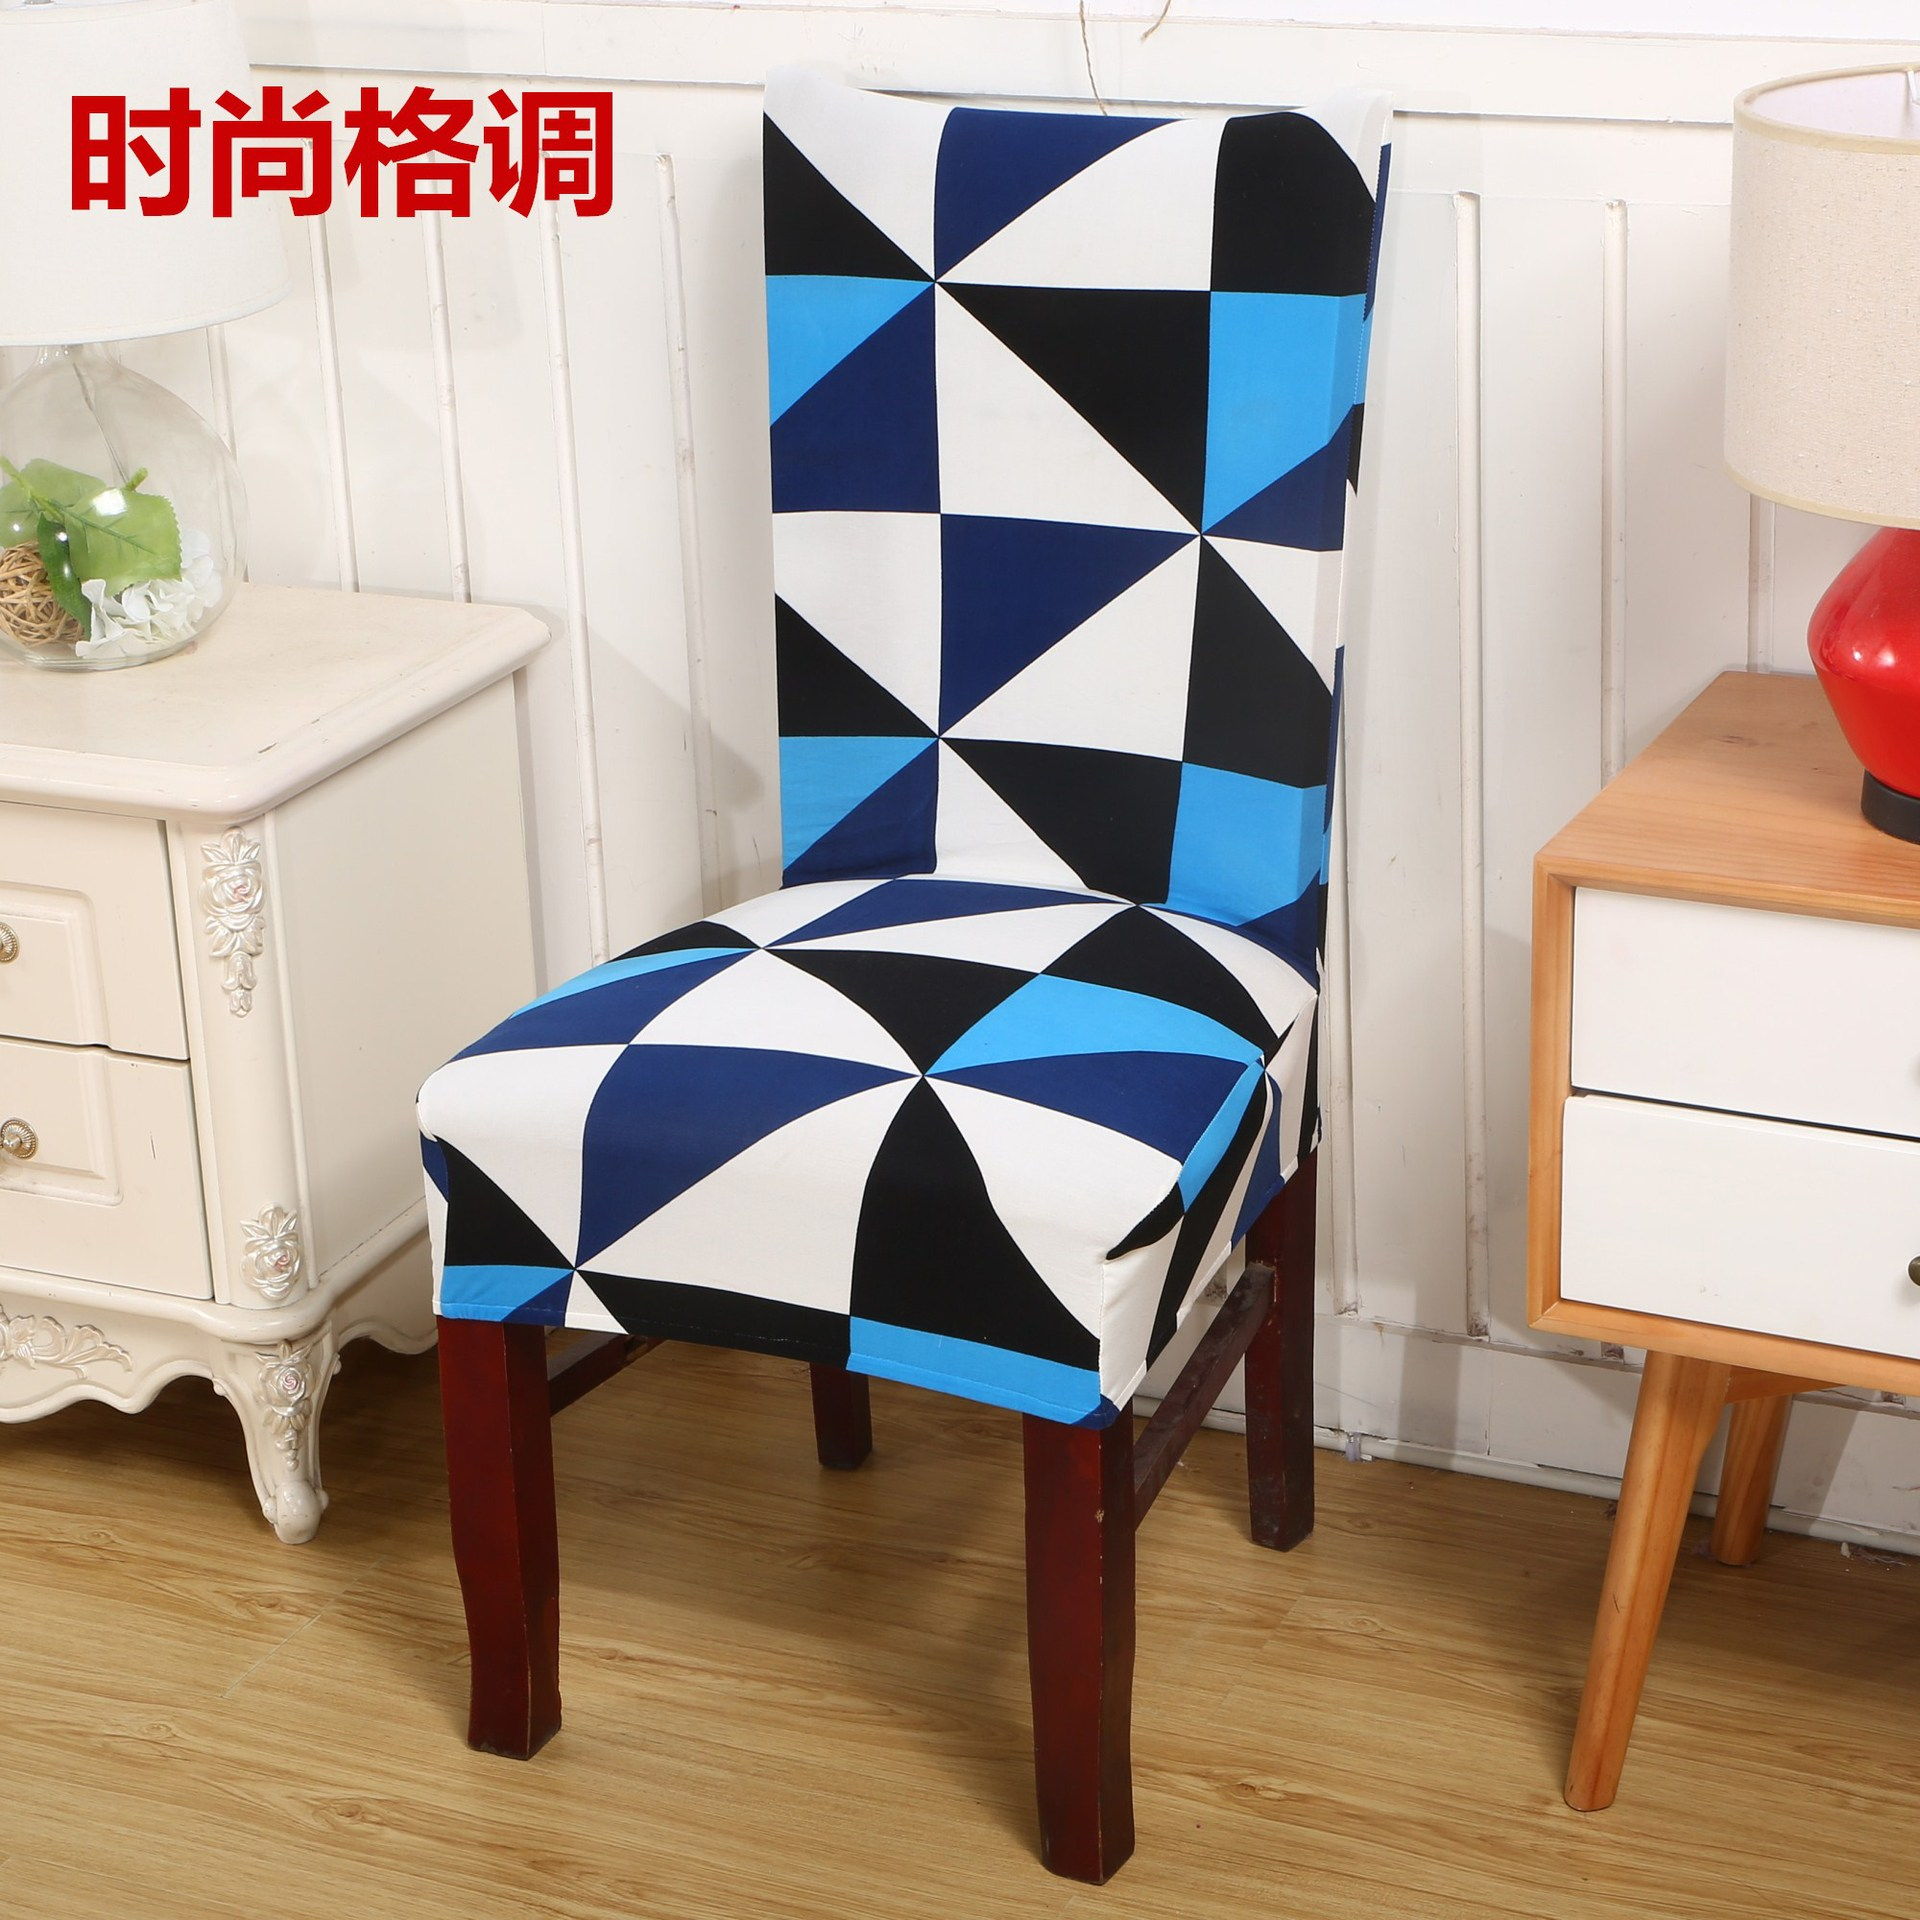 Dining Room Chair Covers Set Of 6 Oxo High Tray Cover Removable Stool Pattern Printing